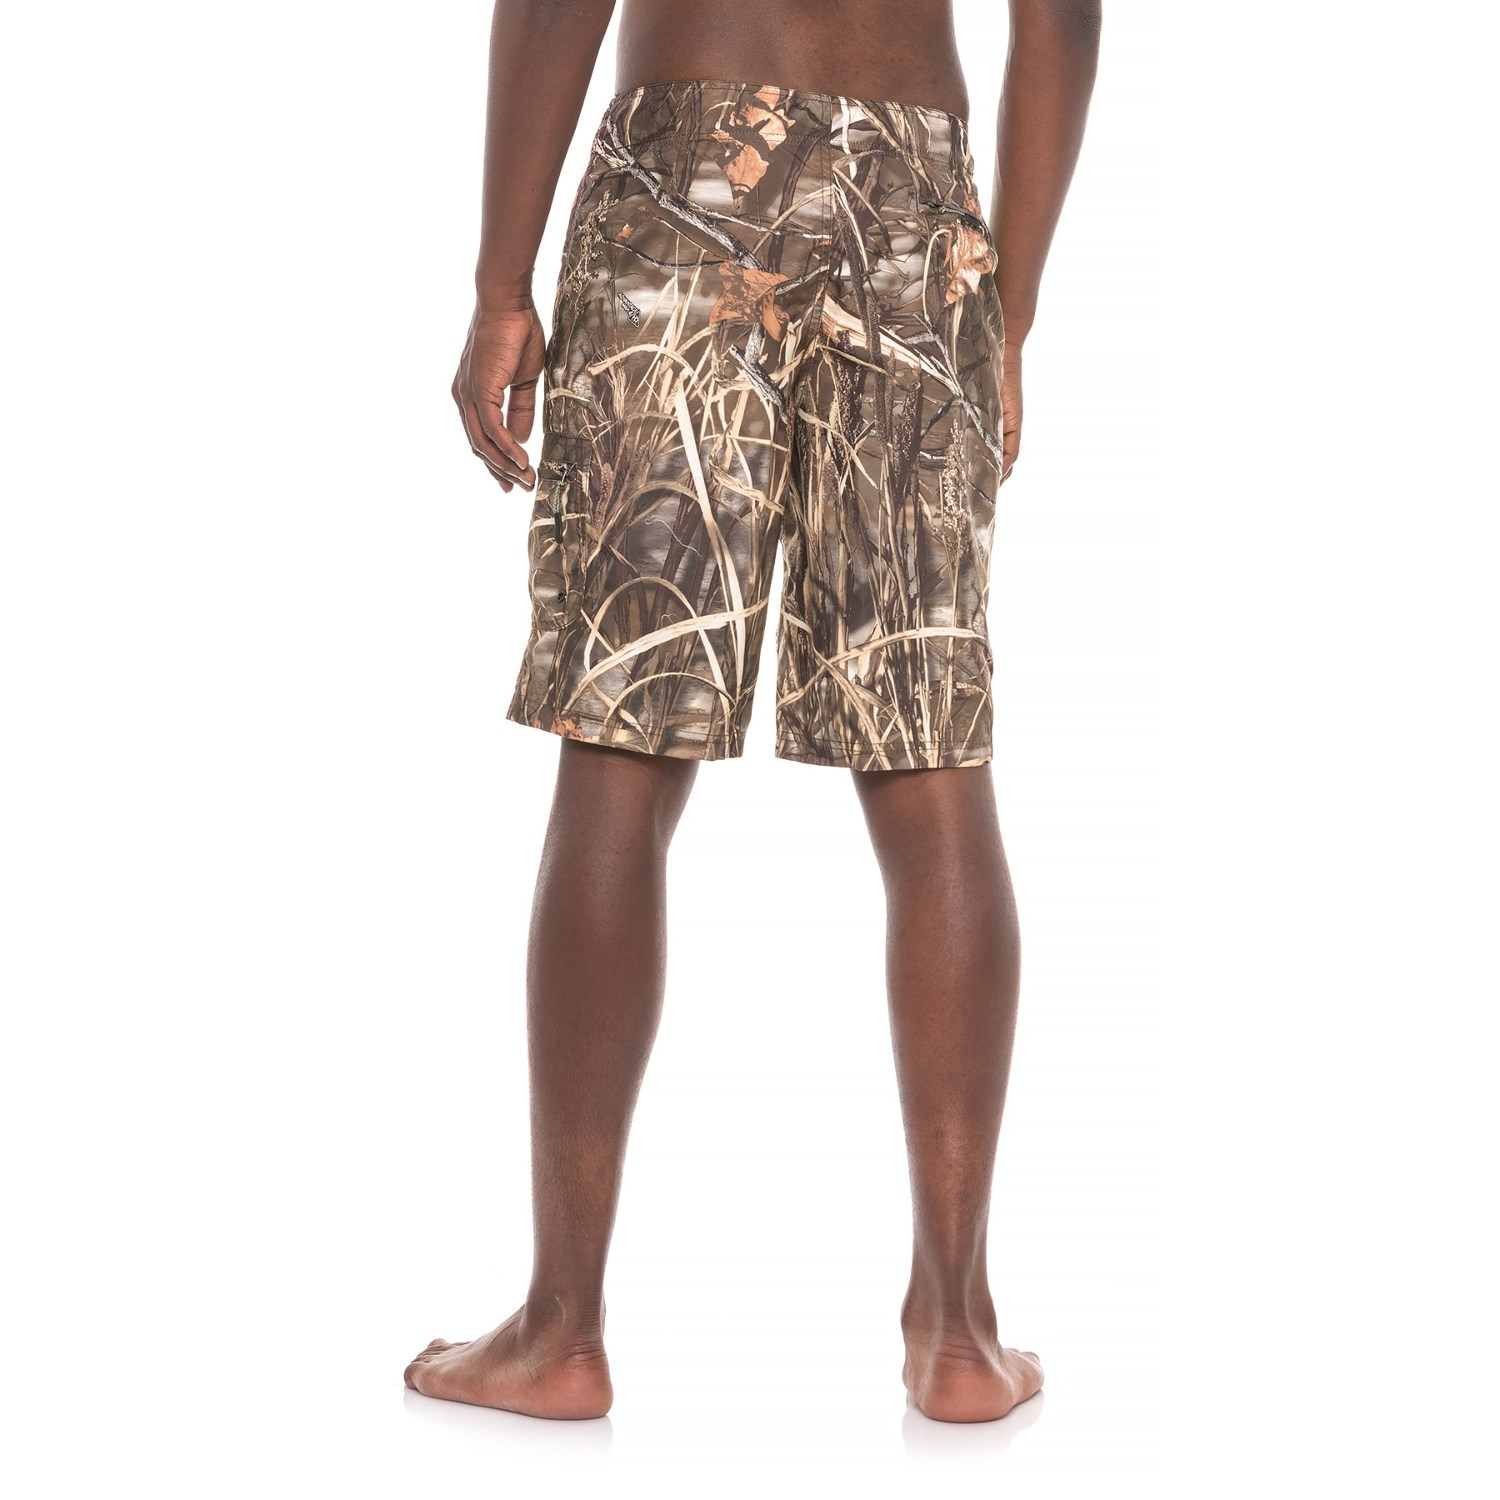 REALTREE® Volley Max Swim Shorts Free Shipping Wiki Buy Online Authentic Discount Choice CxYu3JhtHi